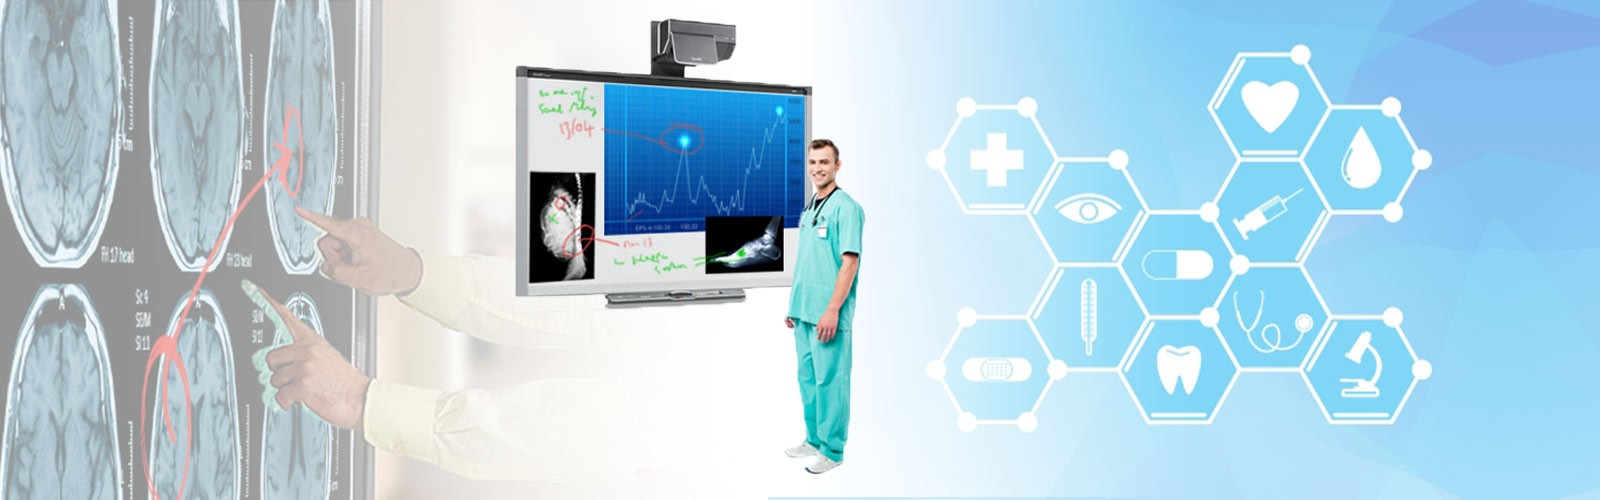 SMARTBoard and touch screen displays in hospitals and being used by a doctor